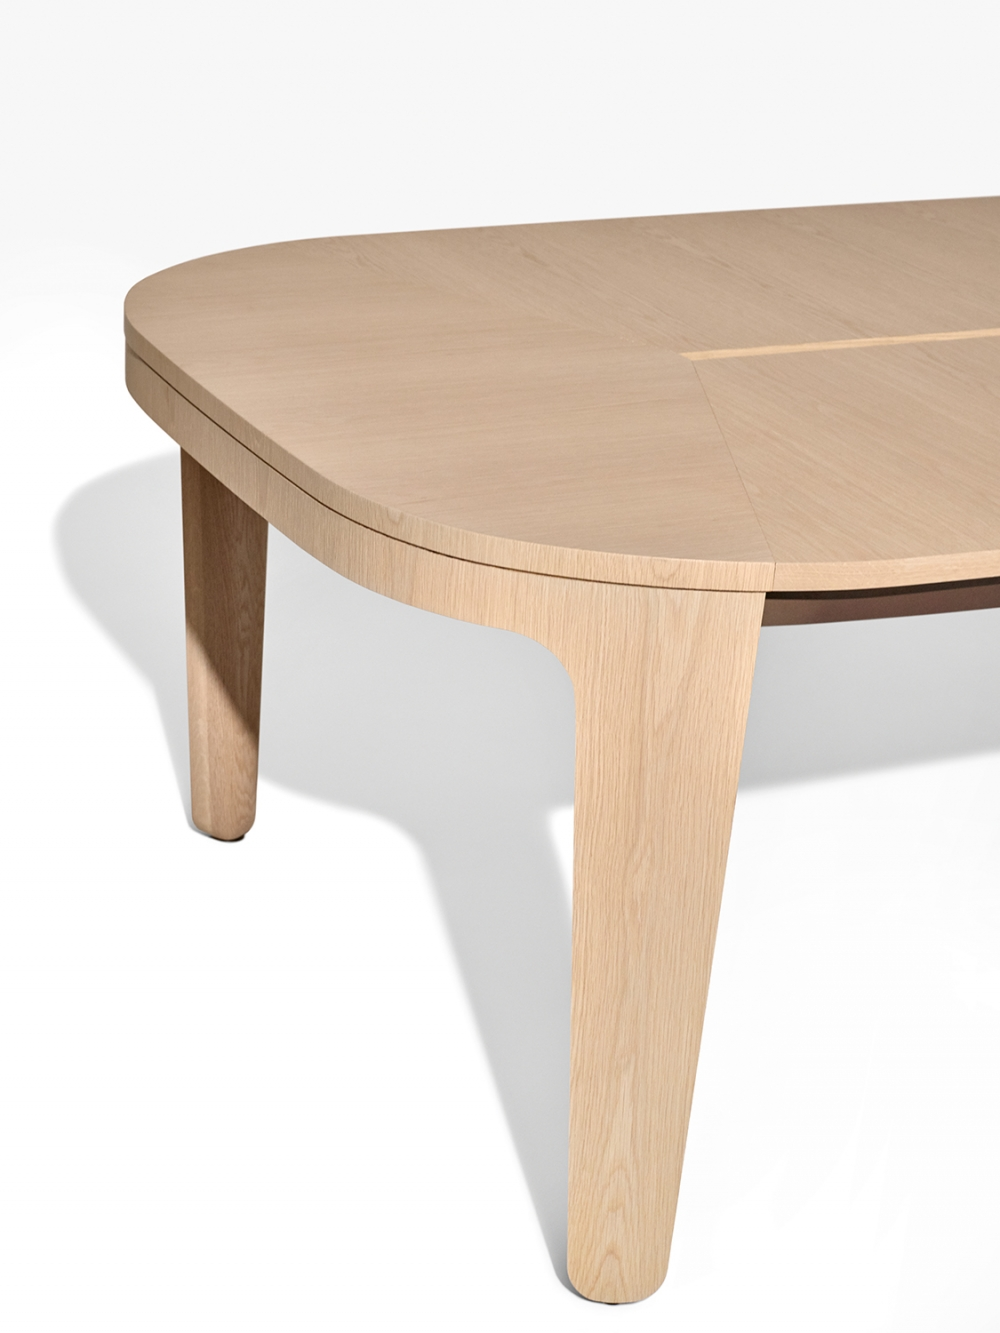 Preview of Alev Meeting | Conference Table | Dune Veneer | Segmented Top | End View